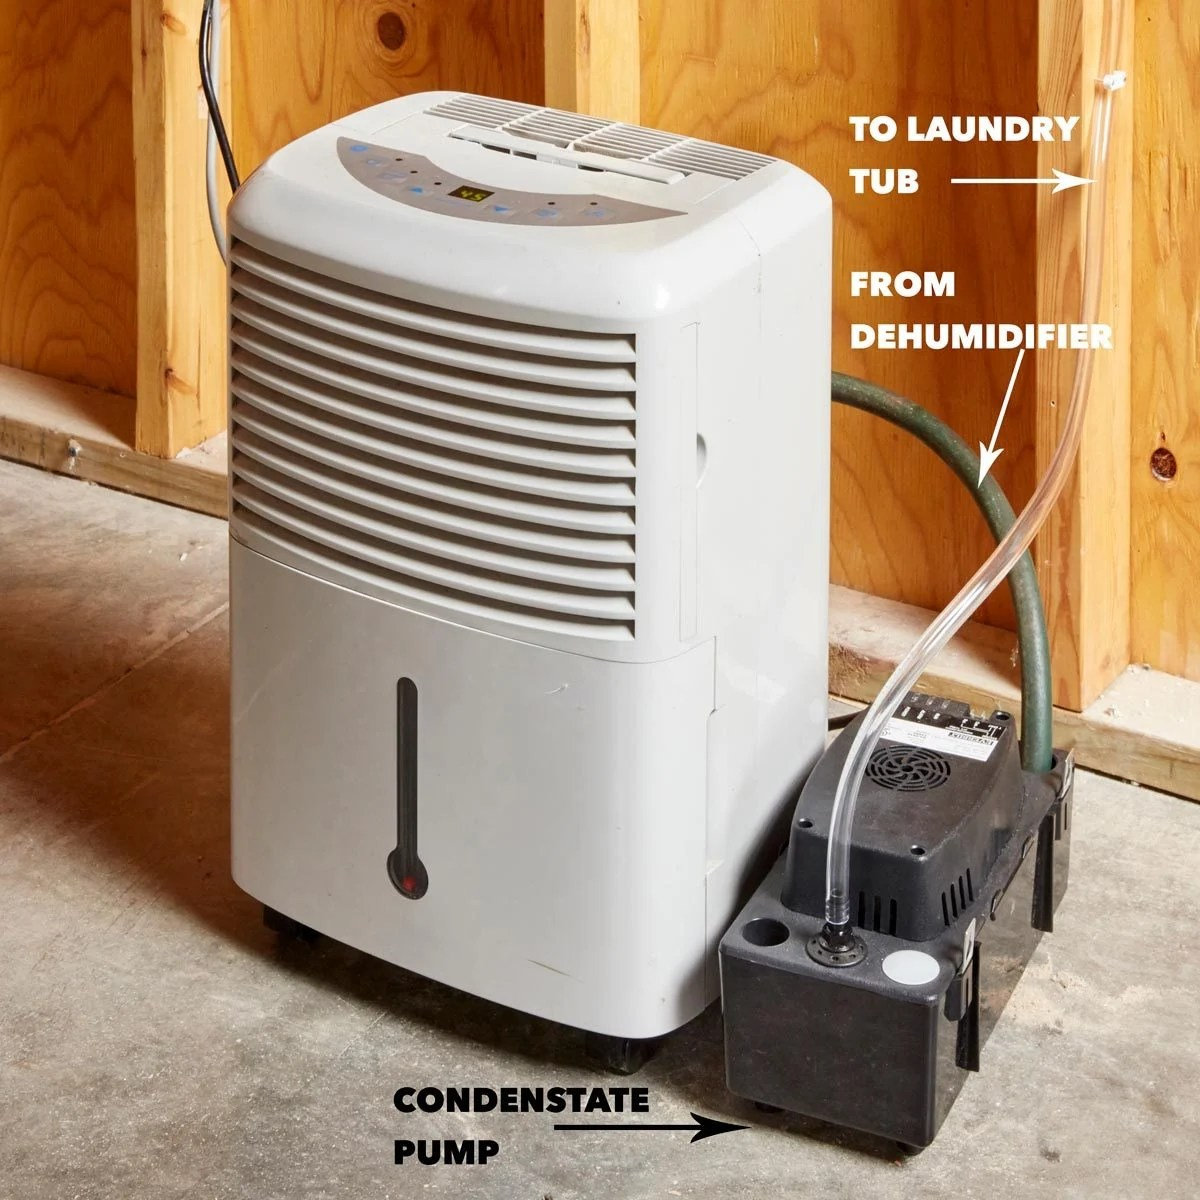 Diy Dehumidifier Save Time With A Diy Self Draining Dehumidifier The Family Handyman